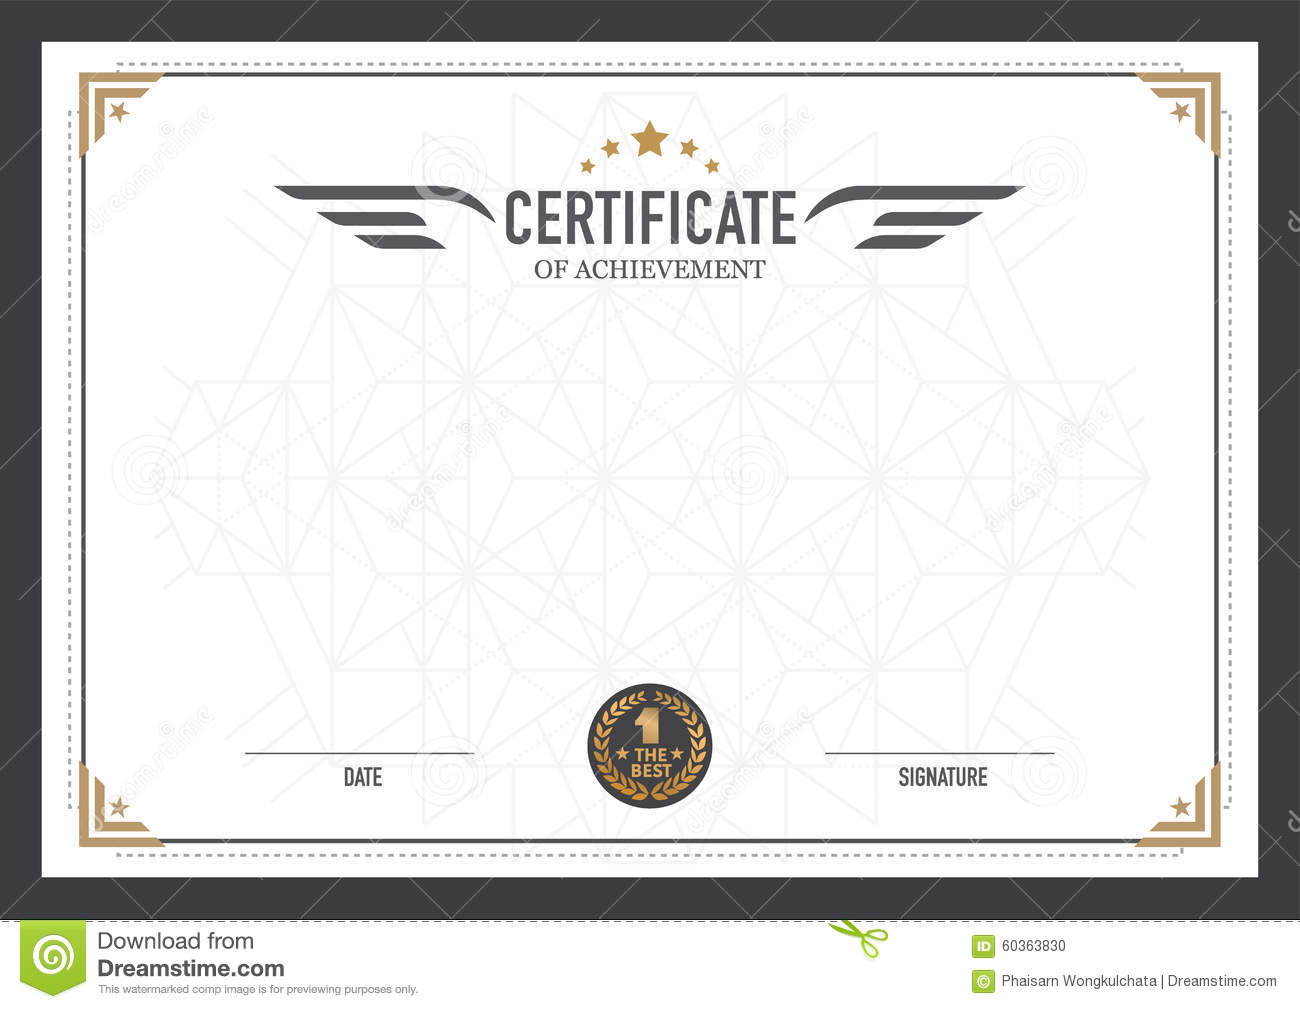 Retro certificate design template stock vector illustration of retro certificate design template thecheapjerseys